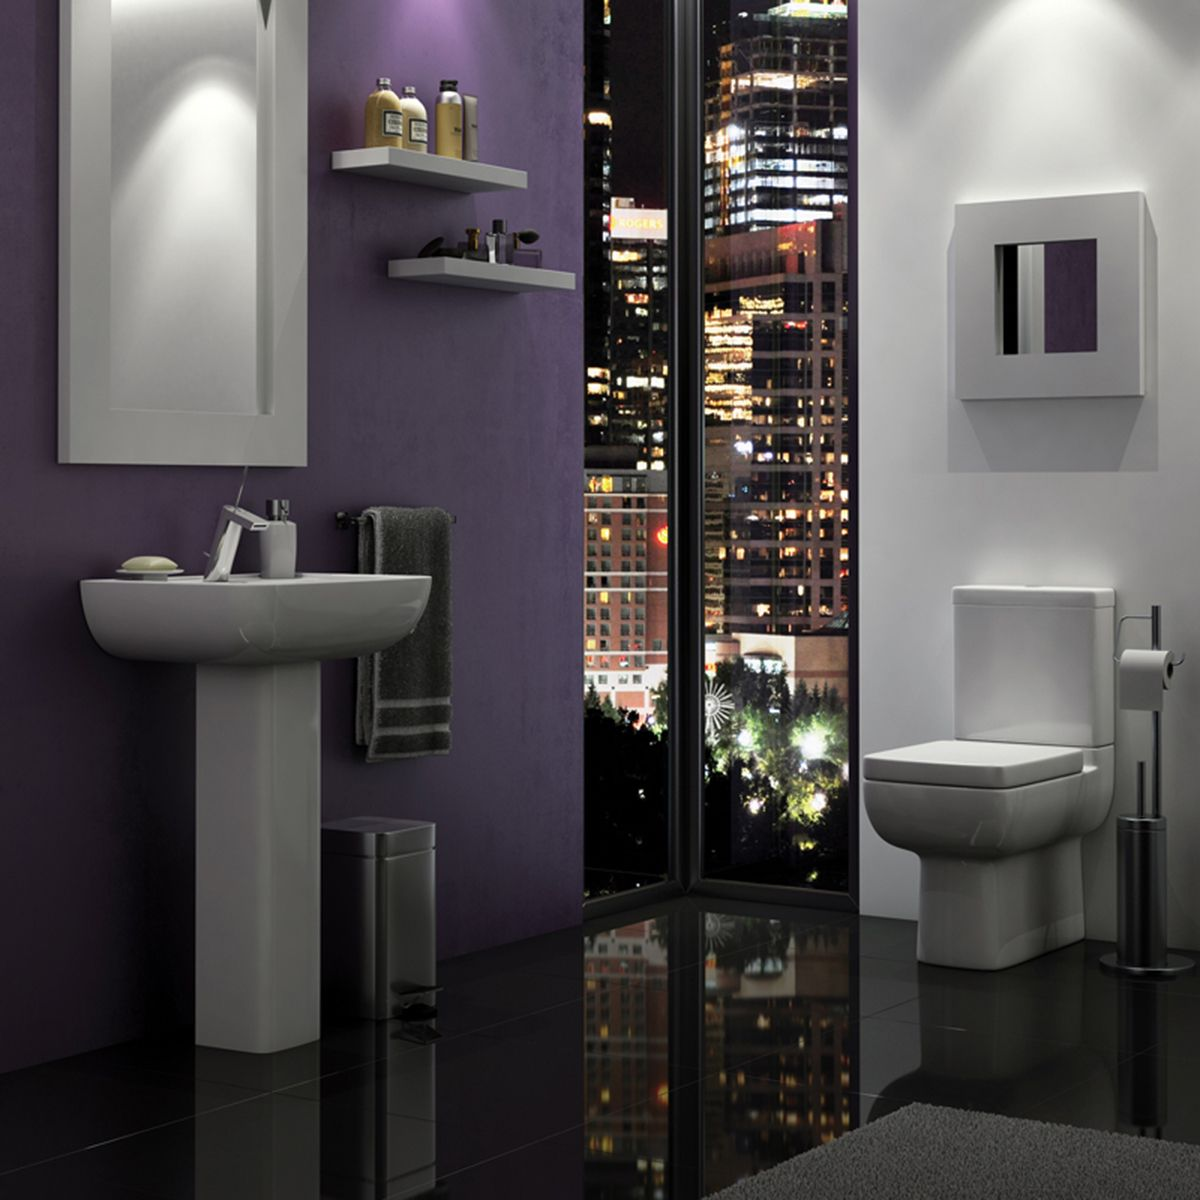 Kartell K-VIT Options 600 Comfort Height Toilet with Soft Close Seat  2